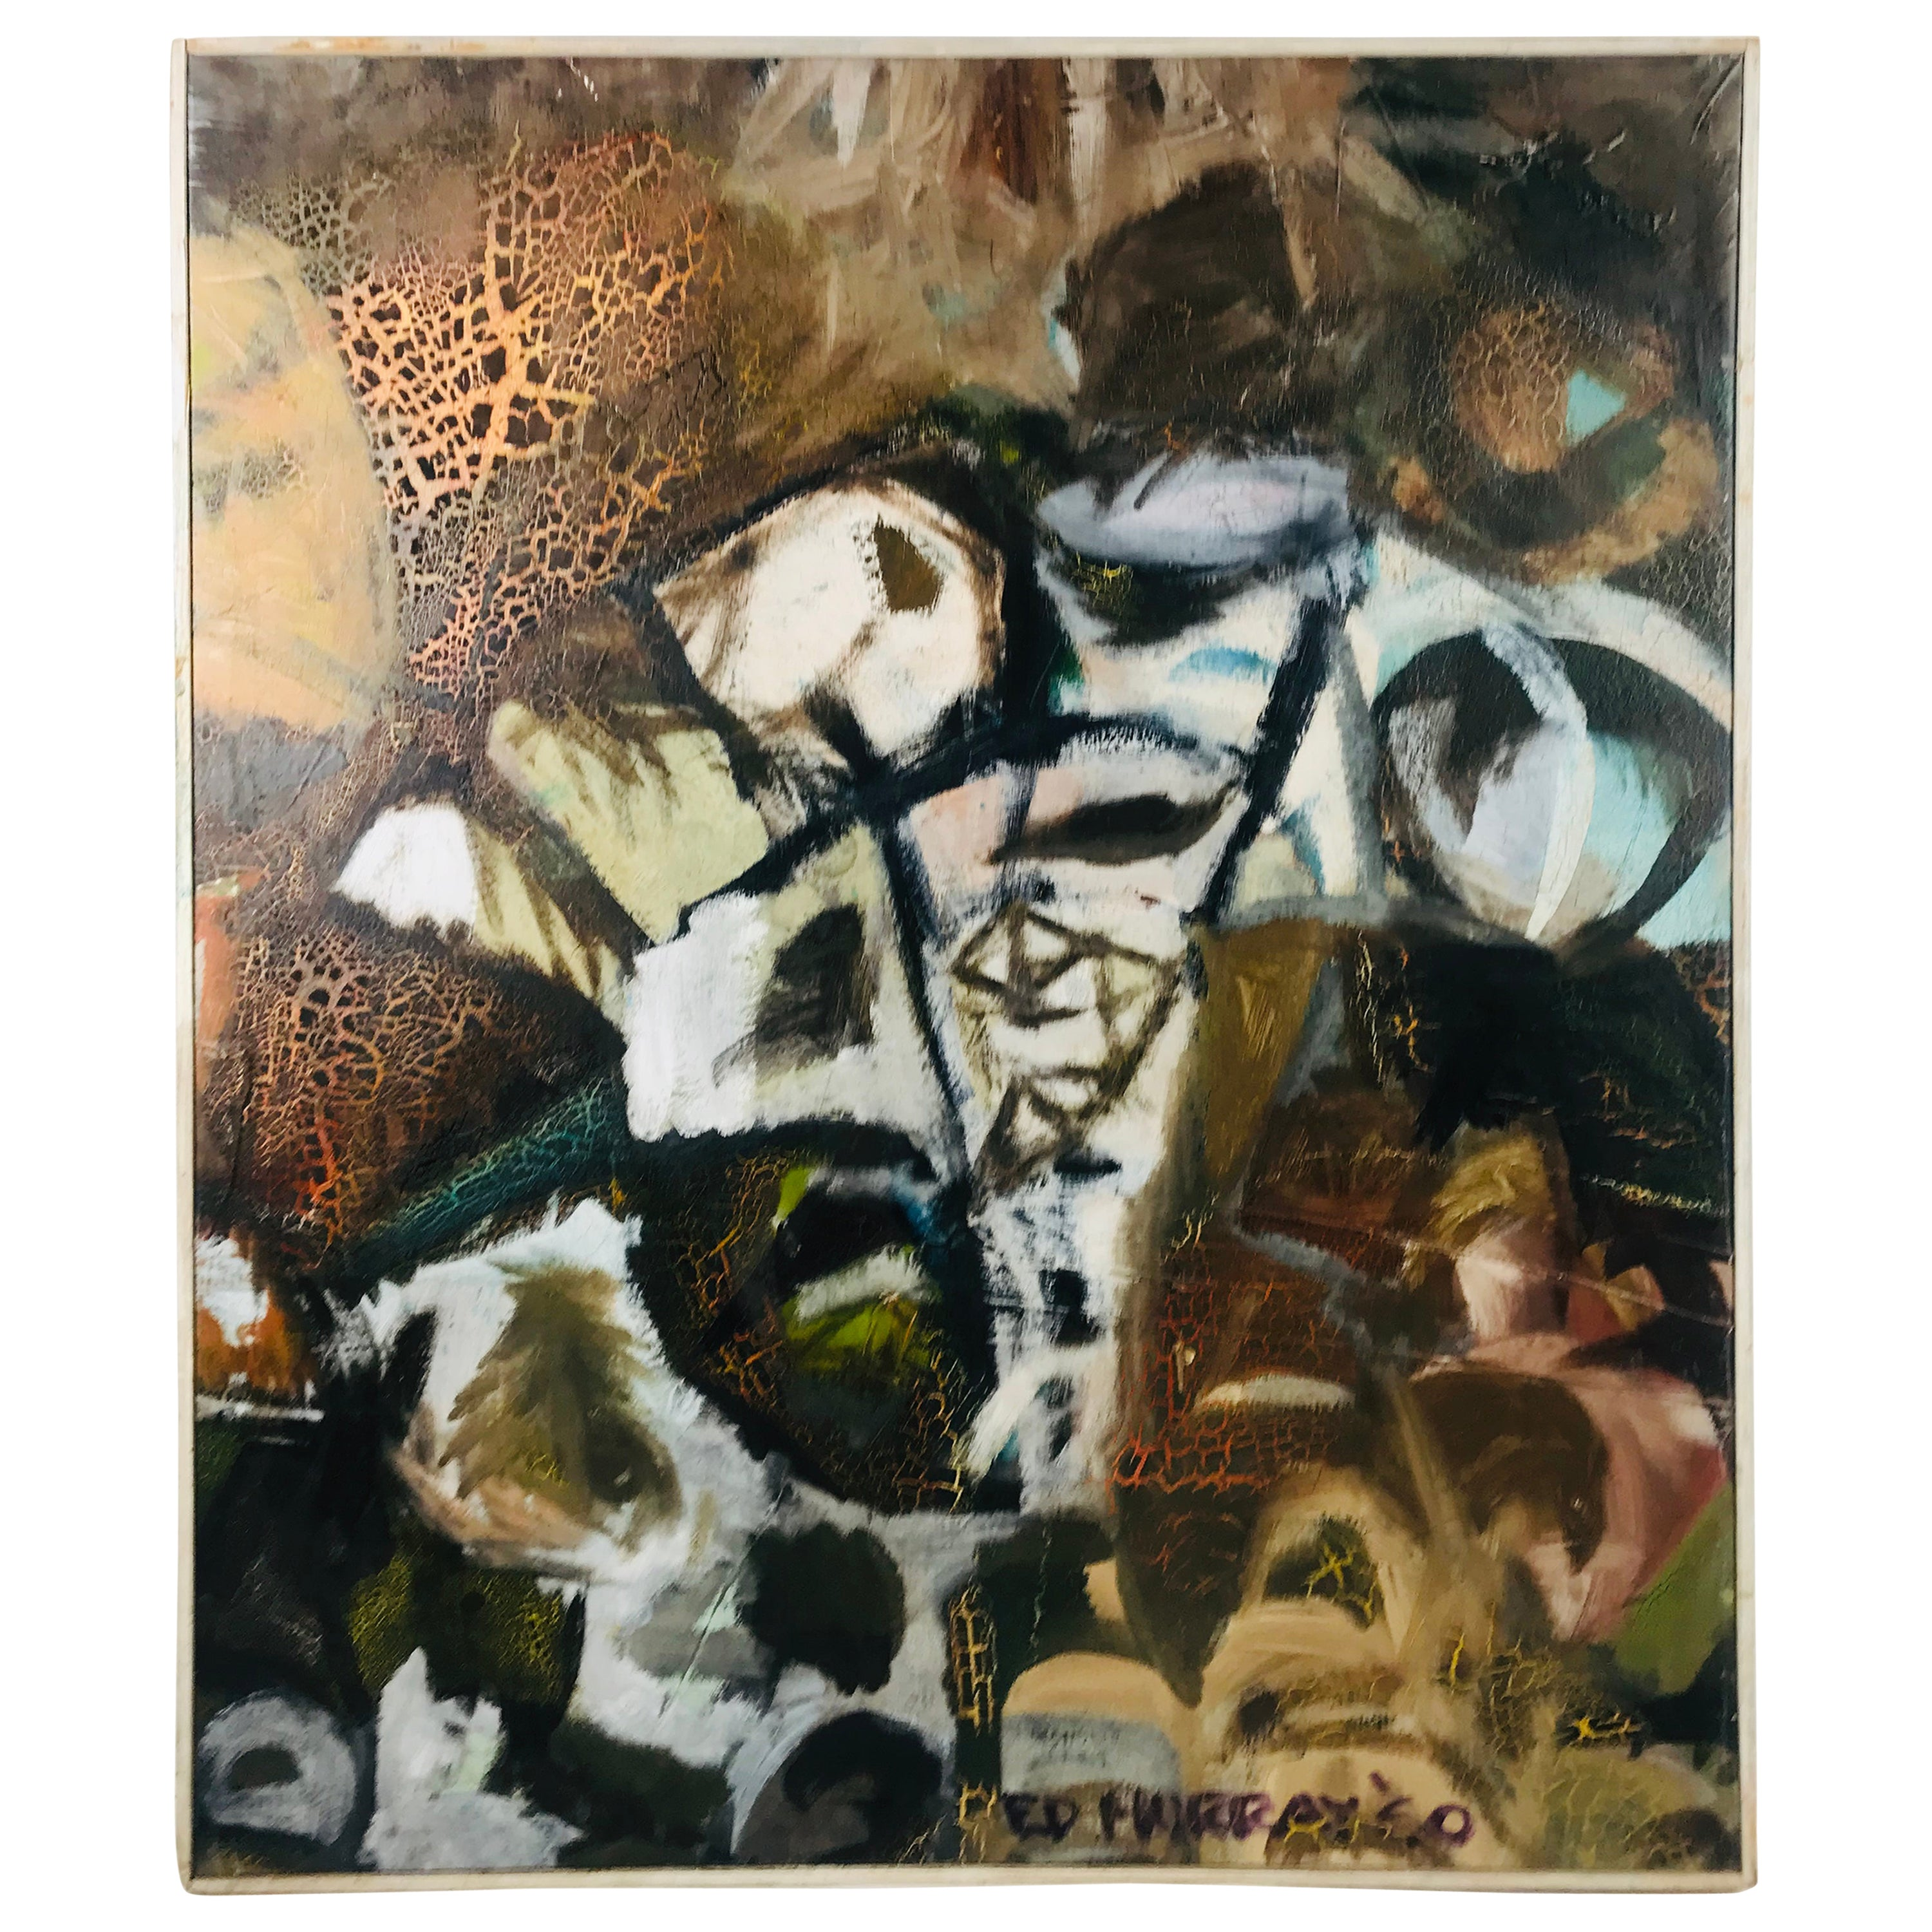 Signed Ed Murray 1960s Oil on Canvas Abstract Fractal Painting